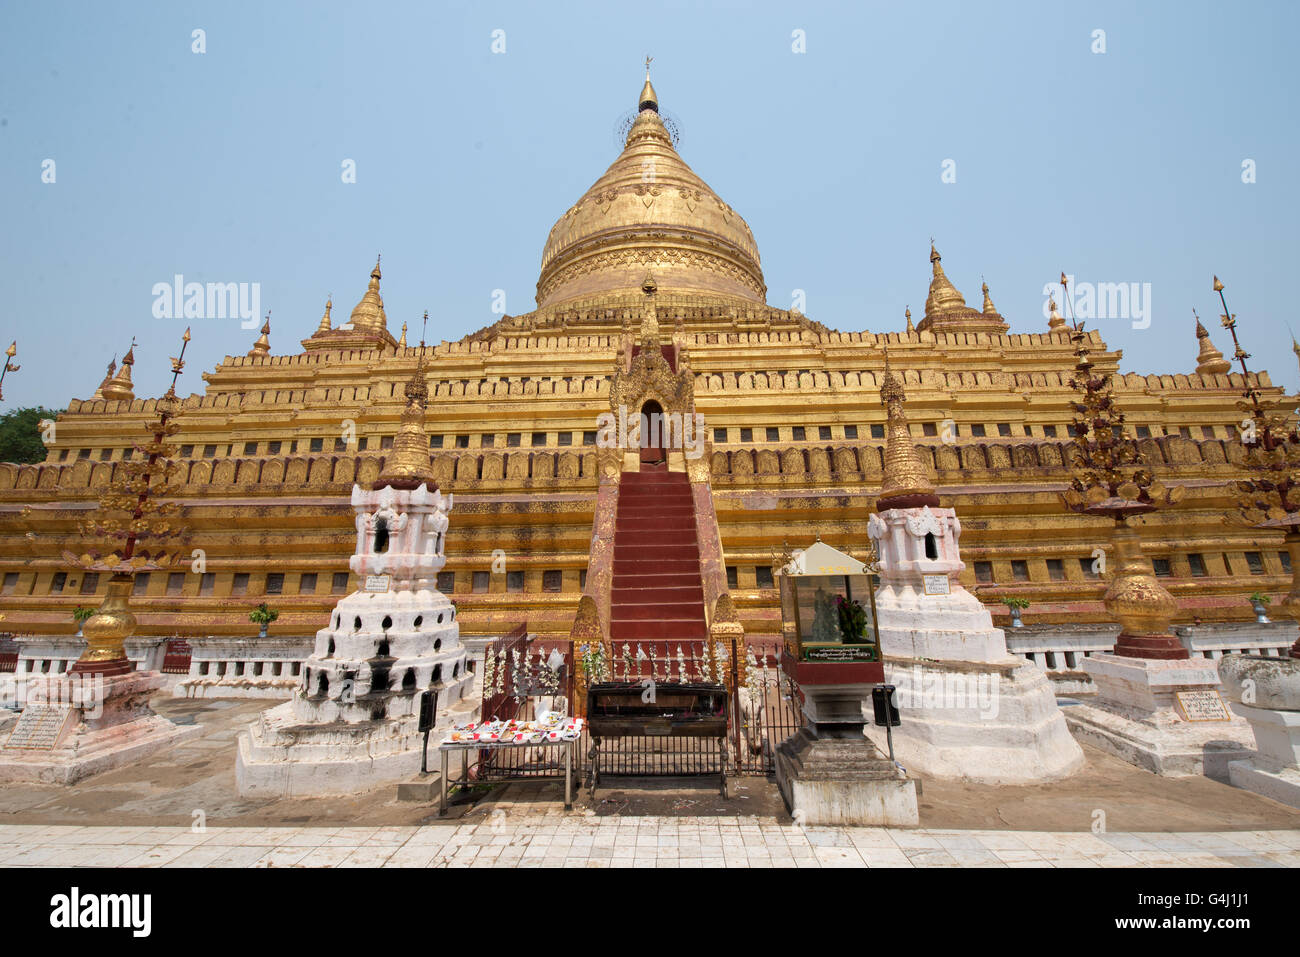 Shwezigon Pagoda, Nyanung-U, Mandalay Region, Myanmar Stock Photo